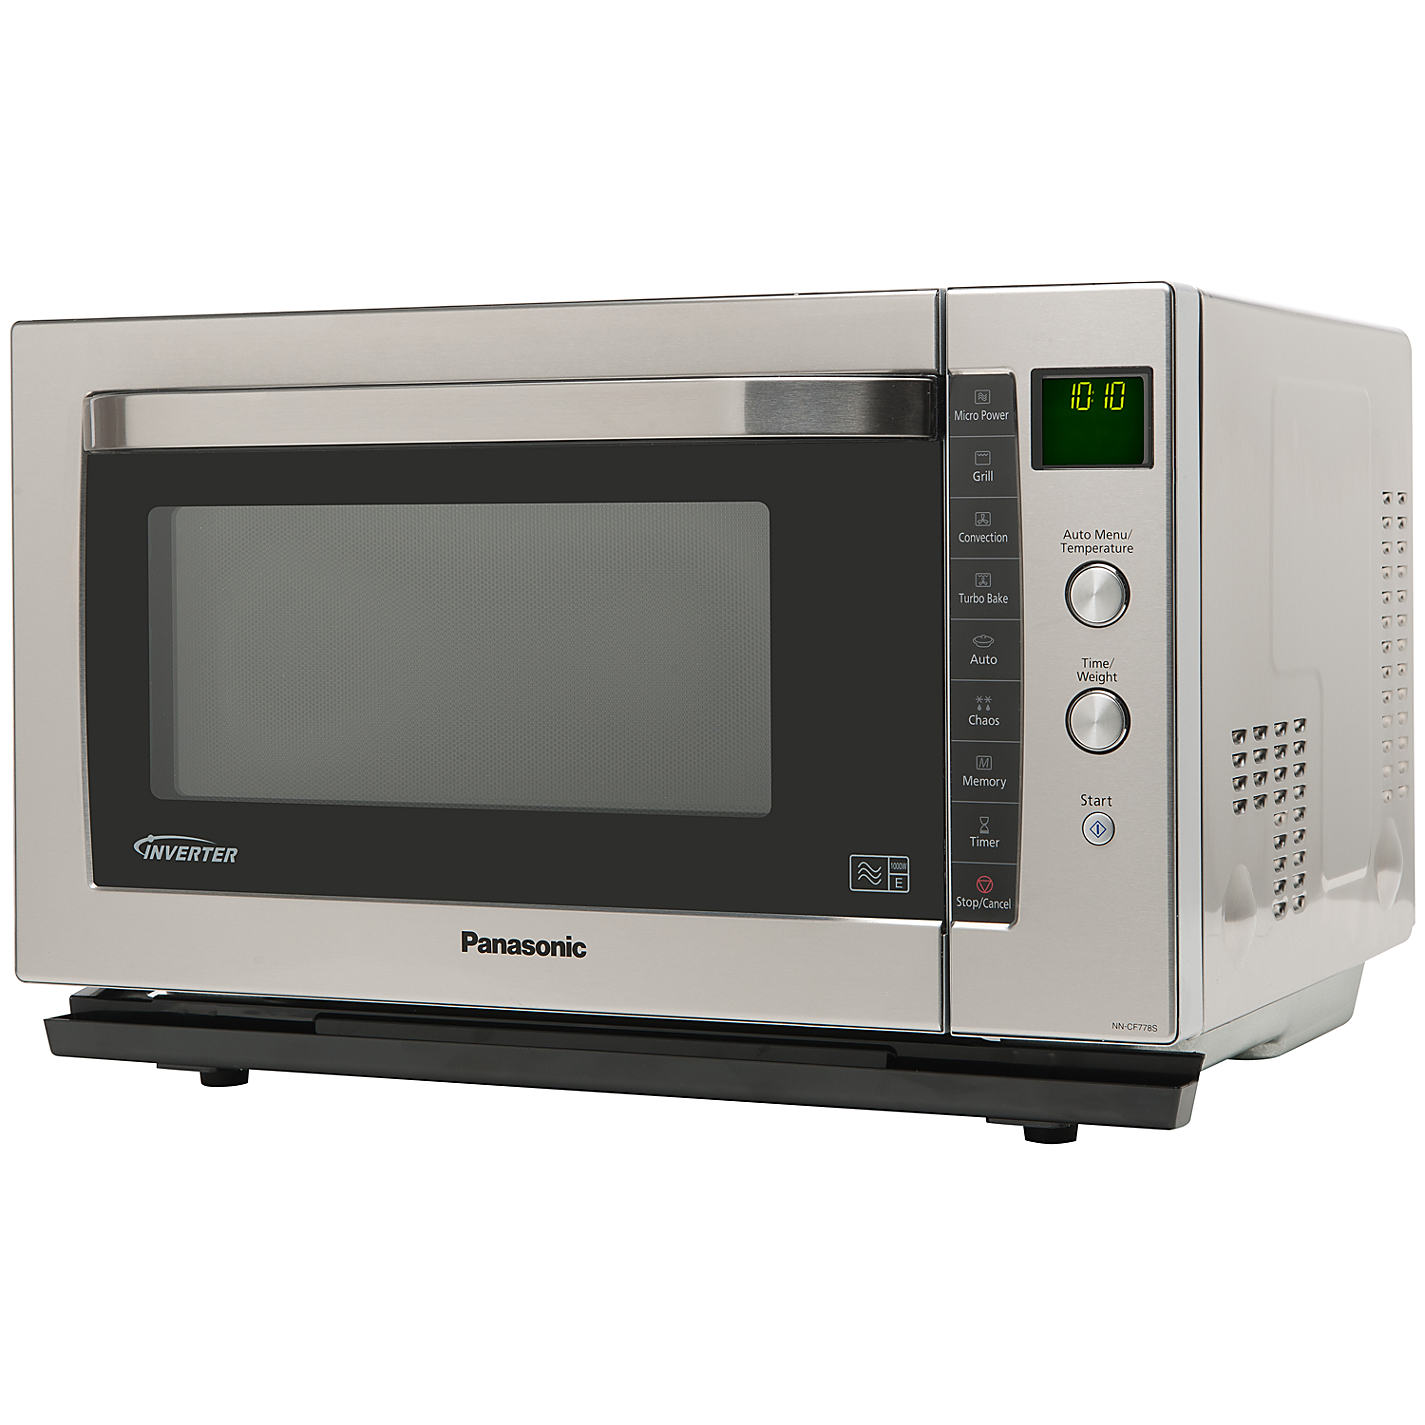 Panasonic Nn Cf778sbpq Combination Microwave Stainless Steel Online At Johnlewis